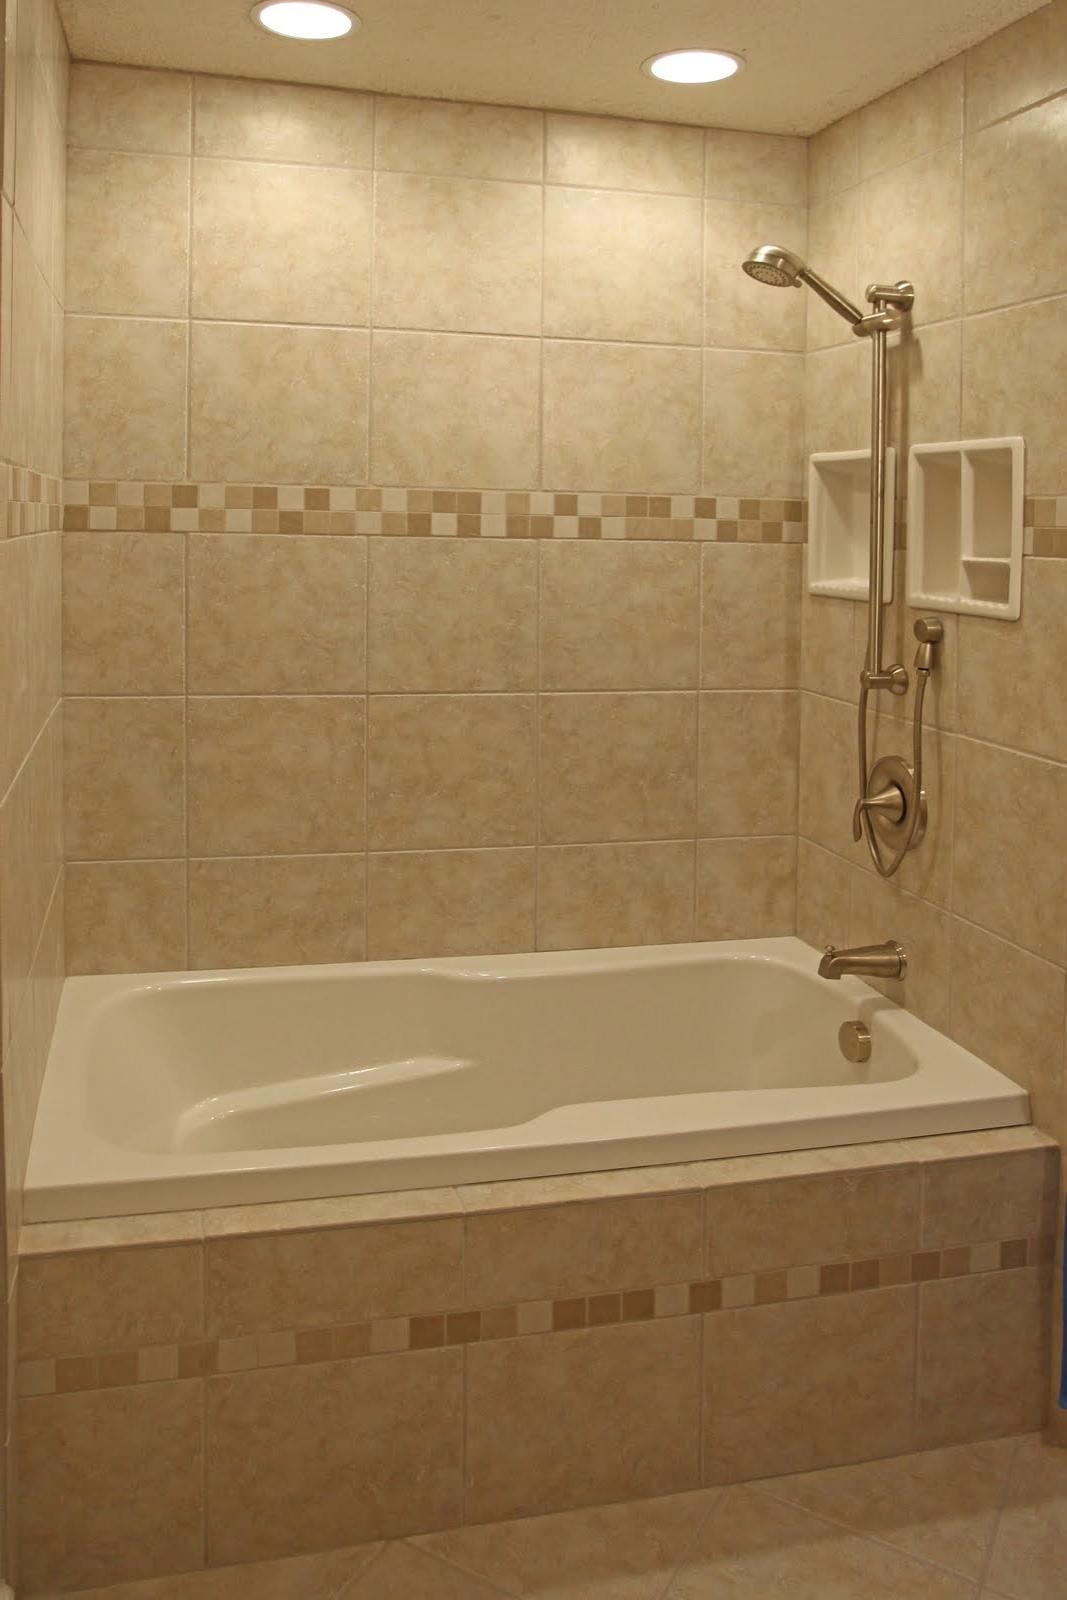 ceramic tile designs for bathroom walls 30 ideas how to use ceramic tile for shower walls 25195